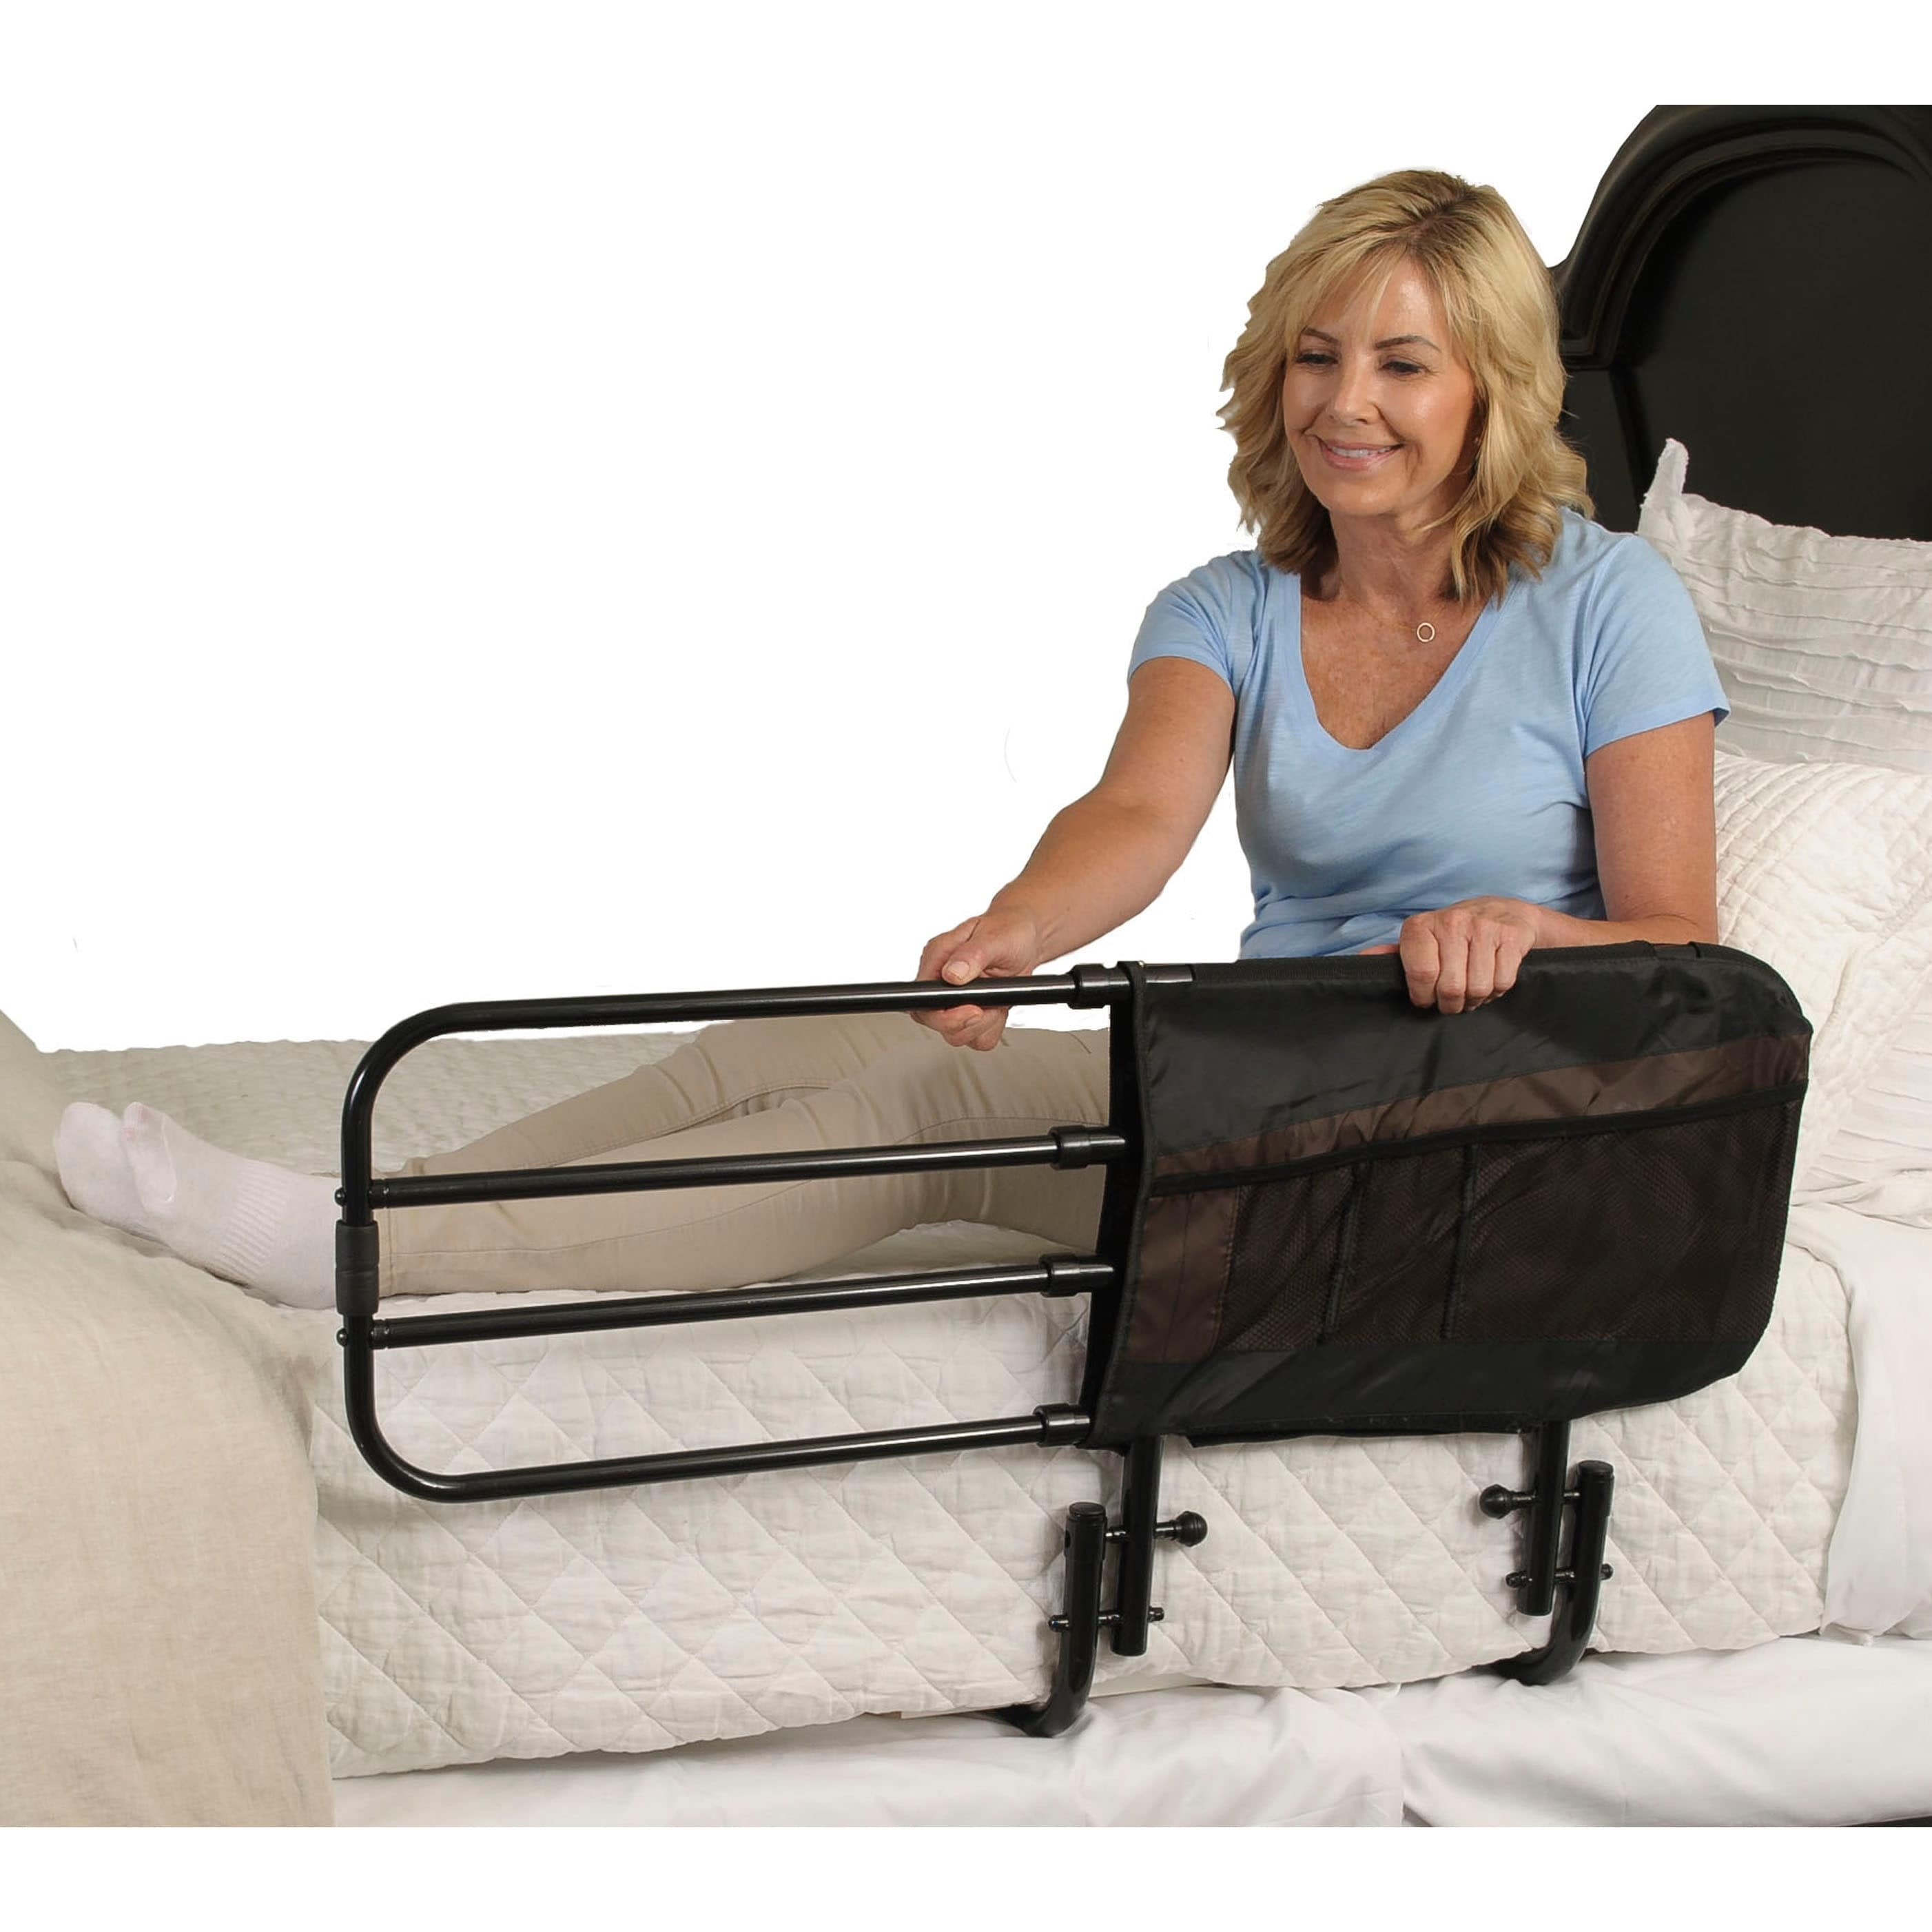 for rails blog hospital medical elderly bathroom safety avacare made guide seniors options quick to simple bed